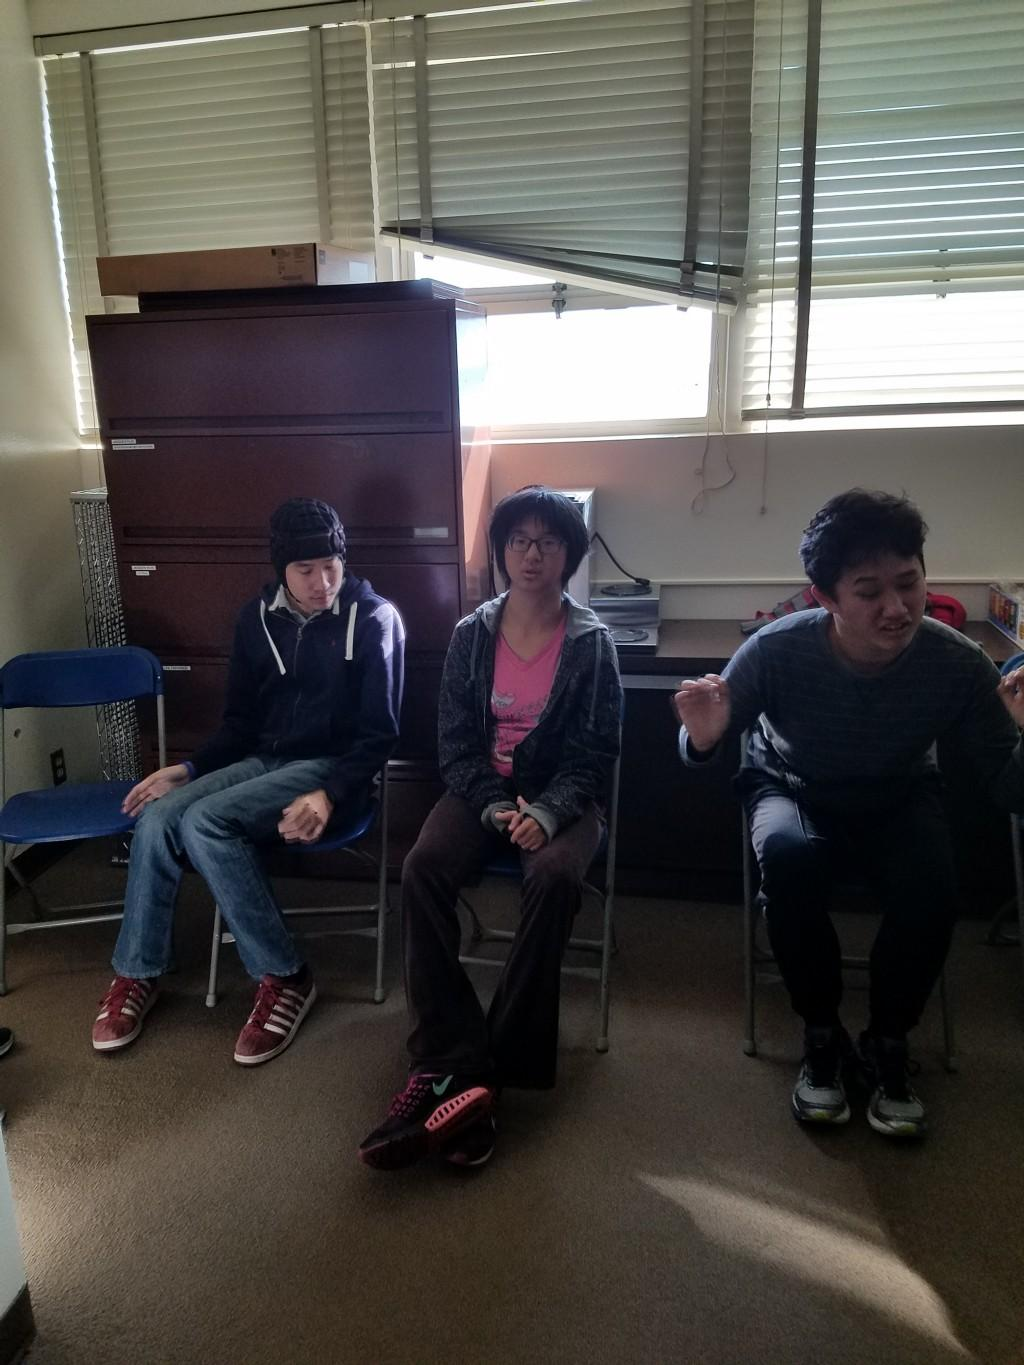 Three students sitting on chairs.